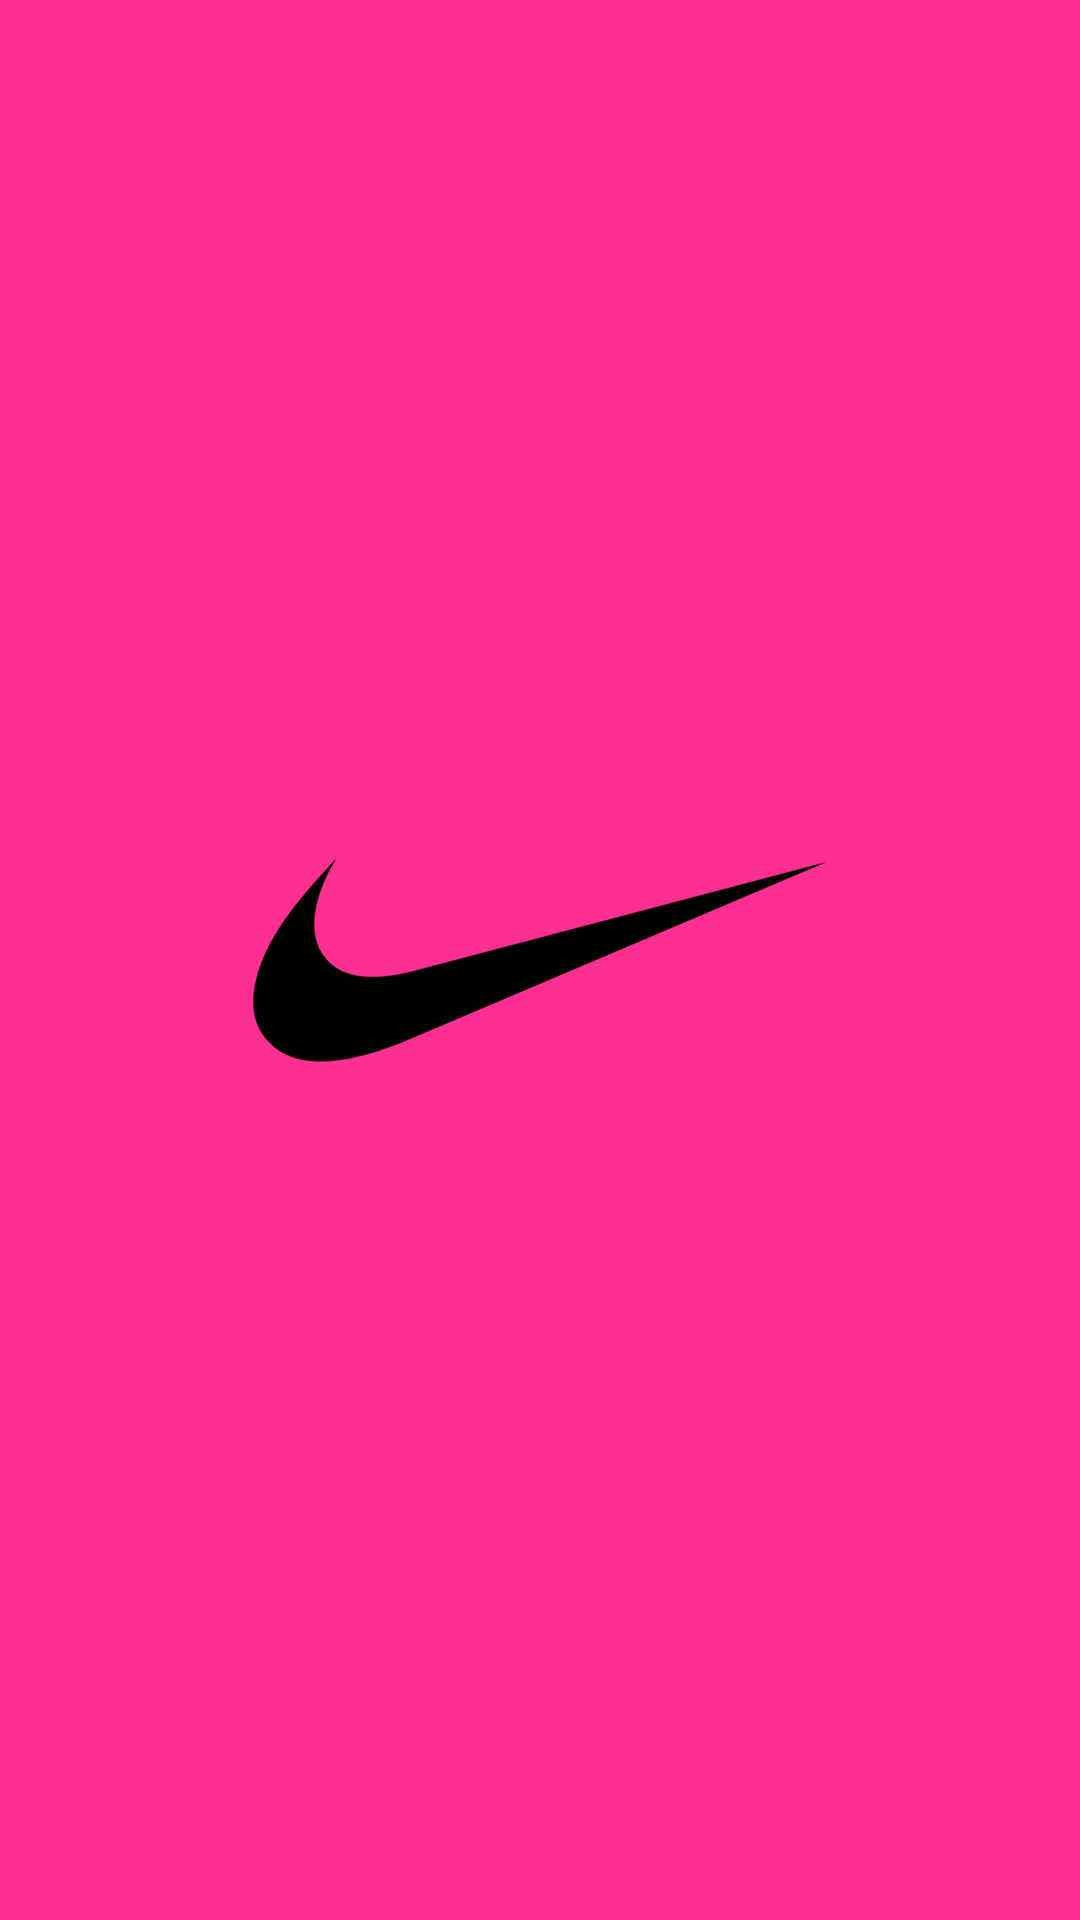 Nike Logo Wallpaper Hd 2018 64 Images